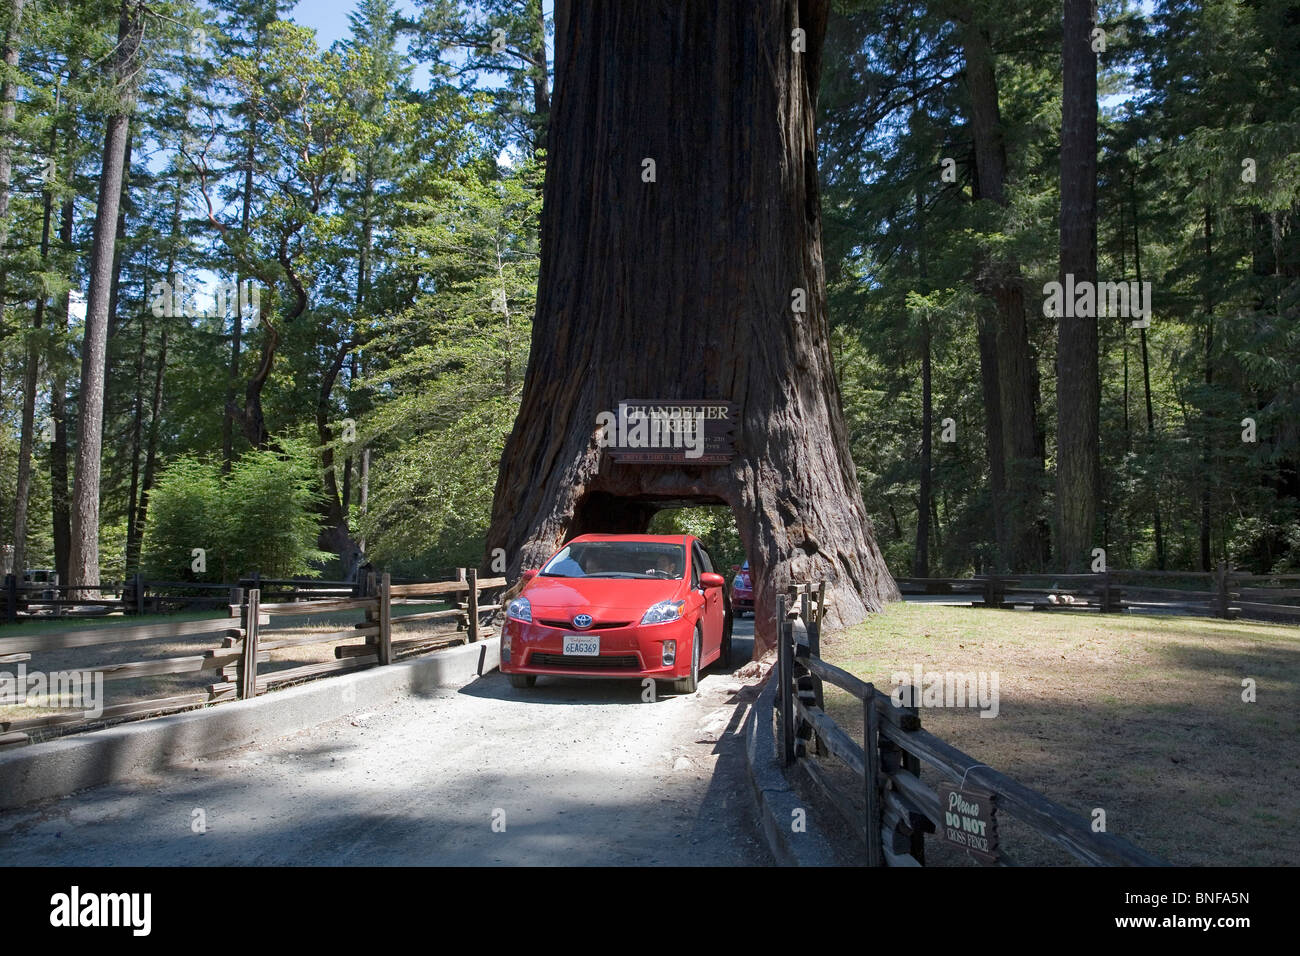 A car driving through the Chandler Tree, a drive through redwood tree in the Redwoods of California - Stock Image